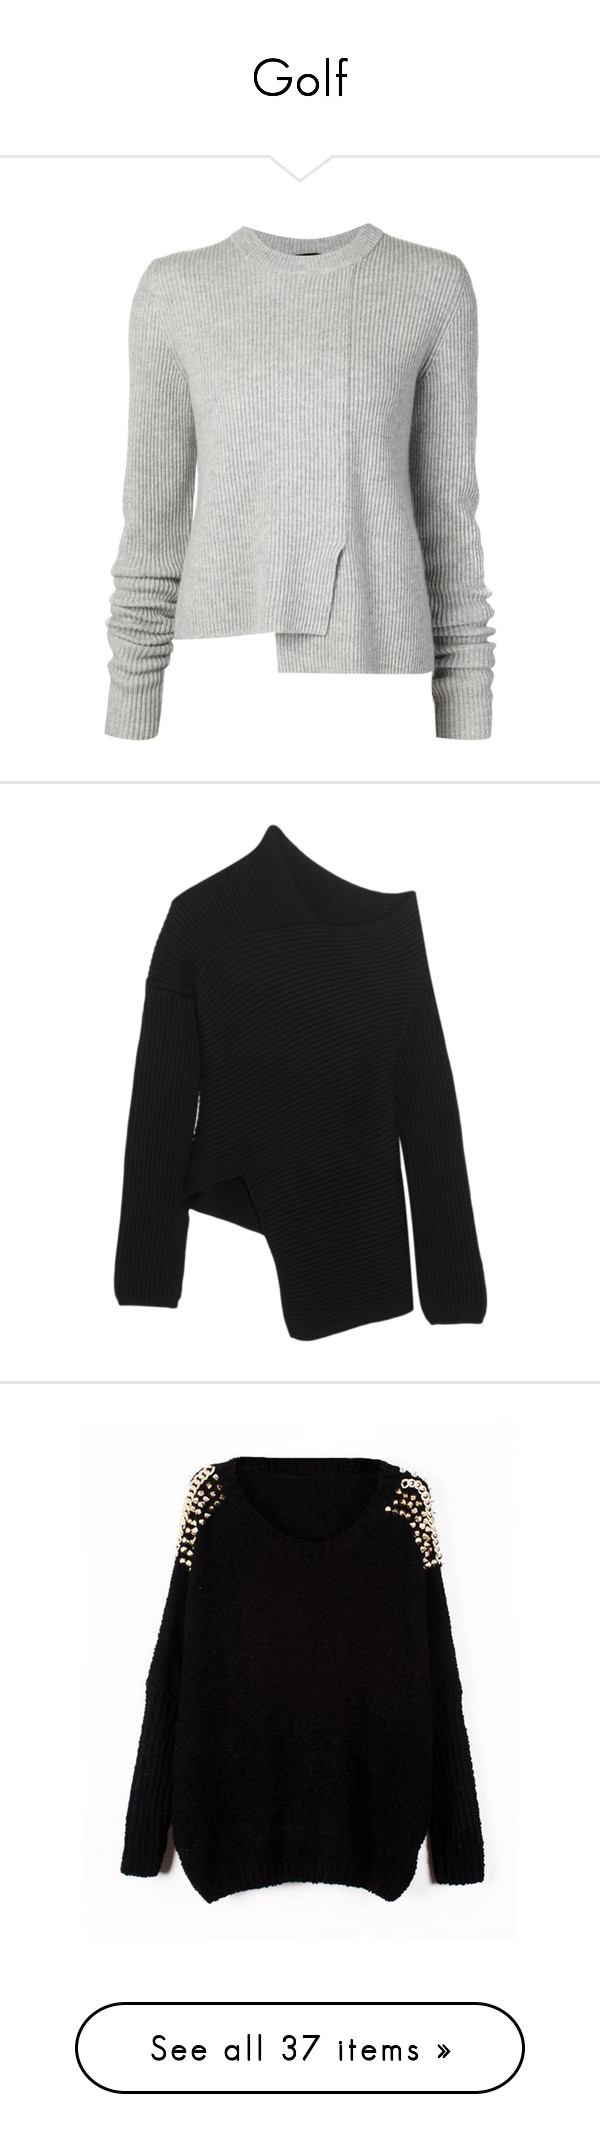 """""""Golf"""" by piccolauby ❤ liked on Polyvore featuring tops, sweaters, shirts, grey, crewneck shirt, long sleeve shirts, long sleeve sweaters, grey crew neck sweater, grey sweater and ribbed sweater"""